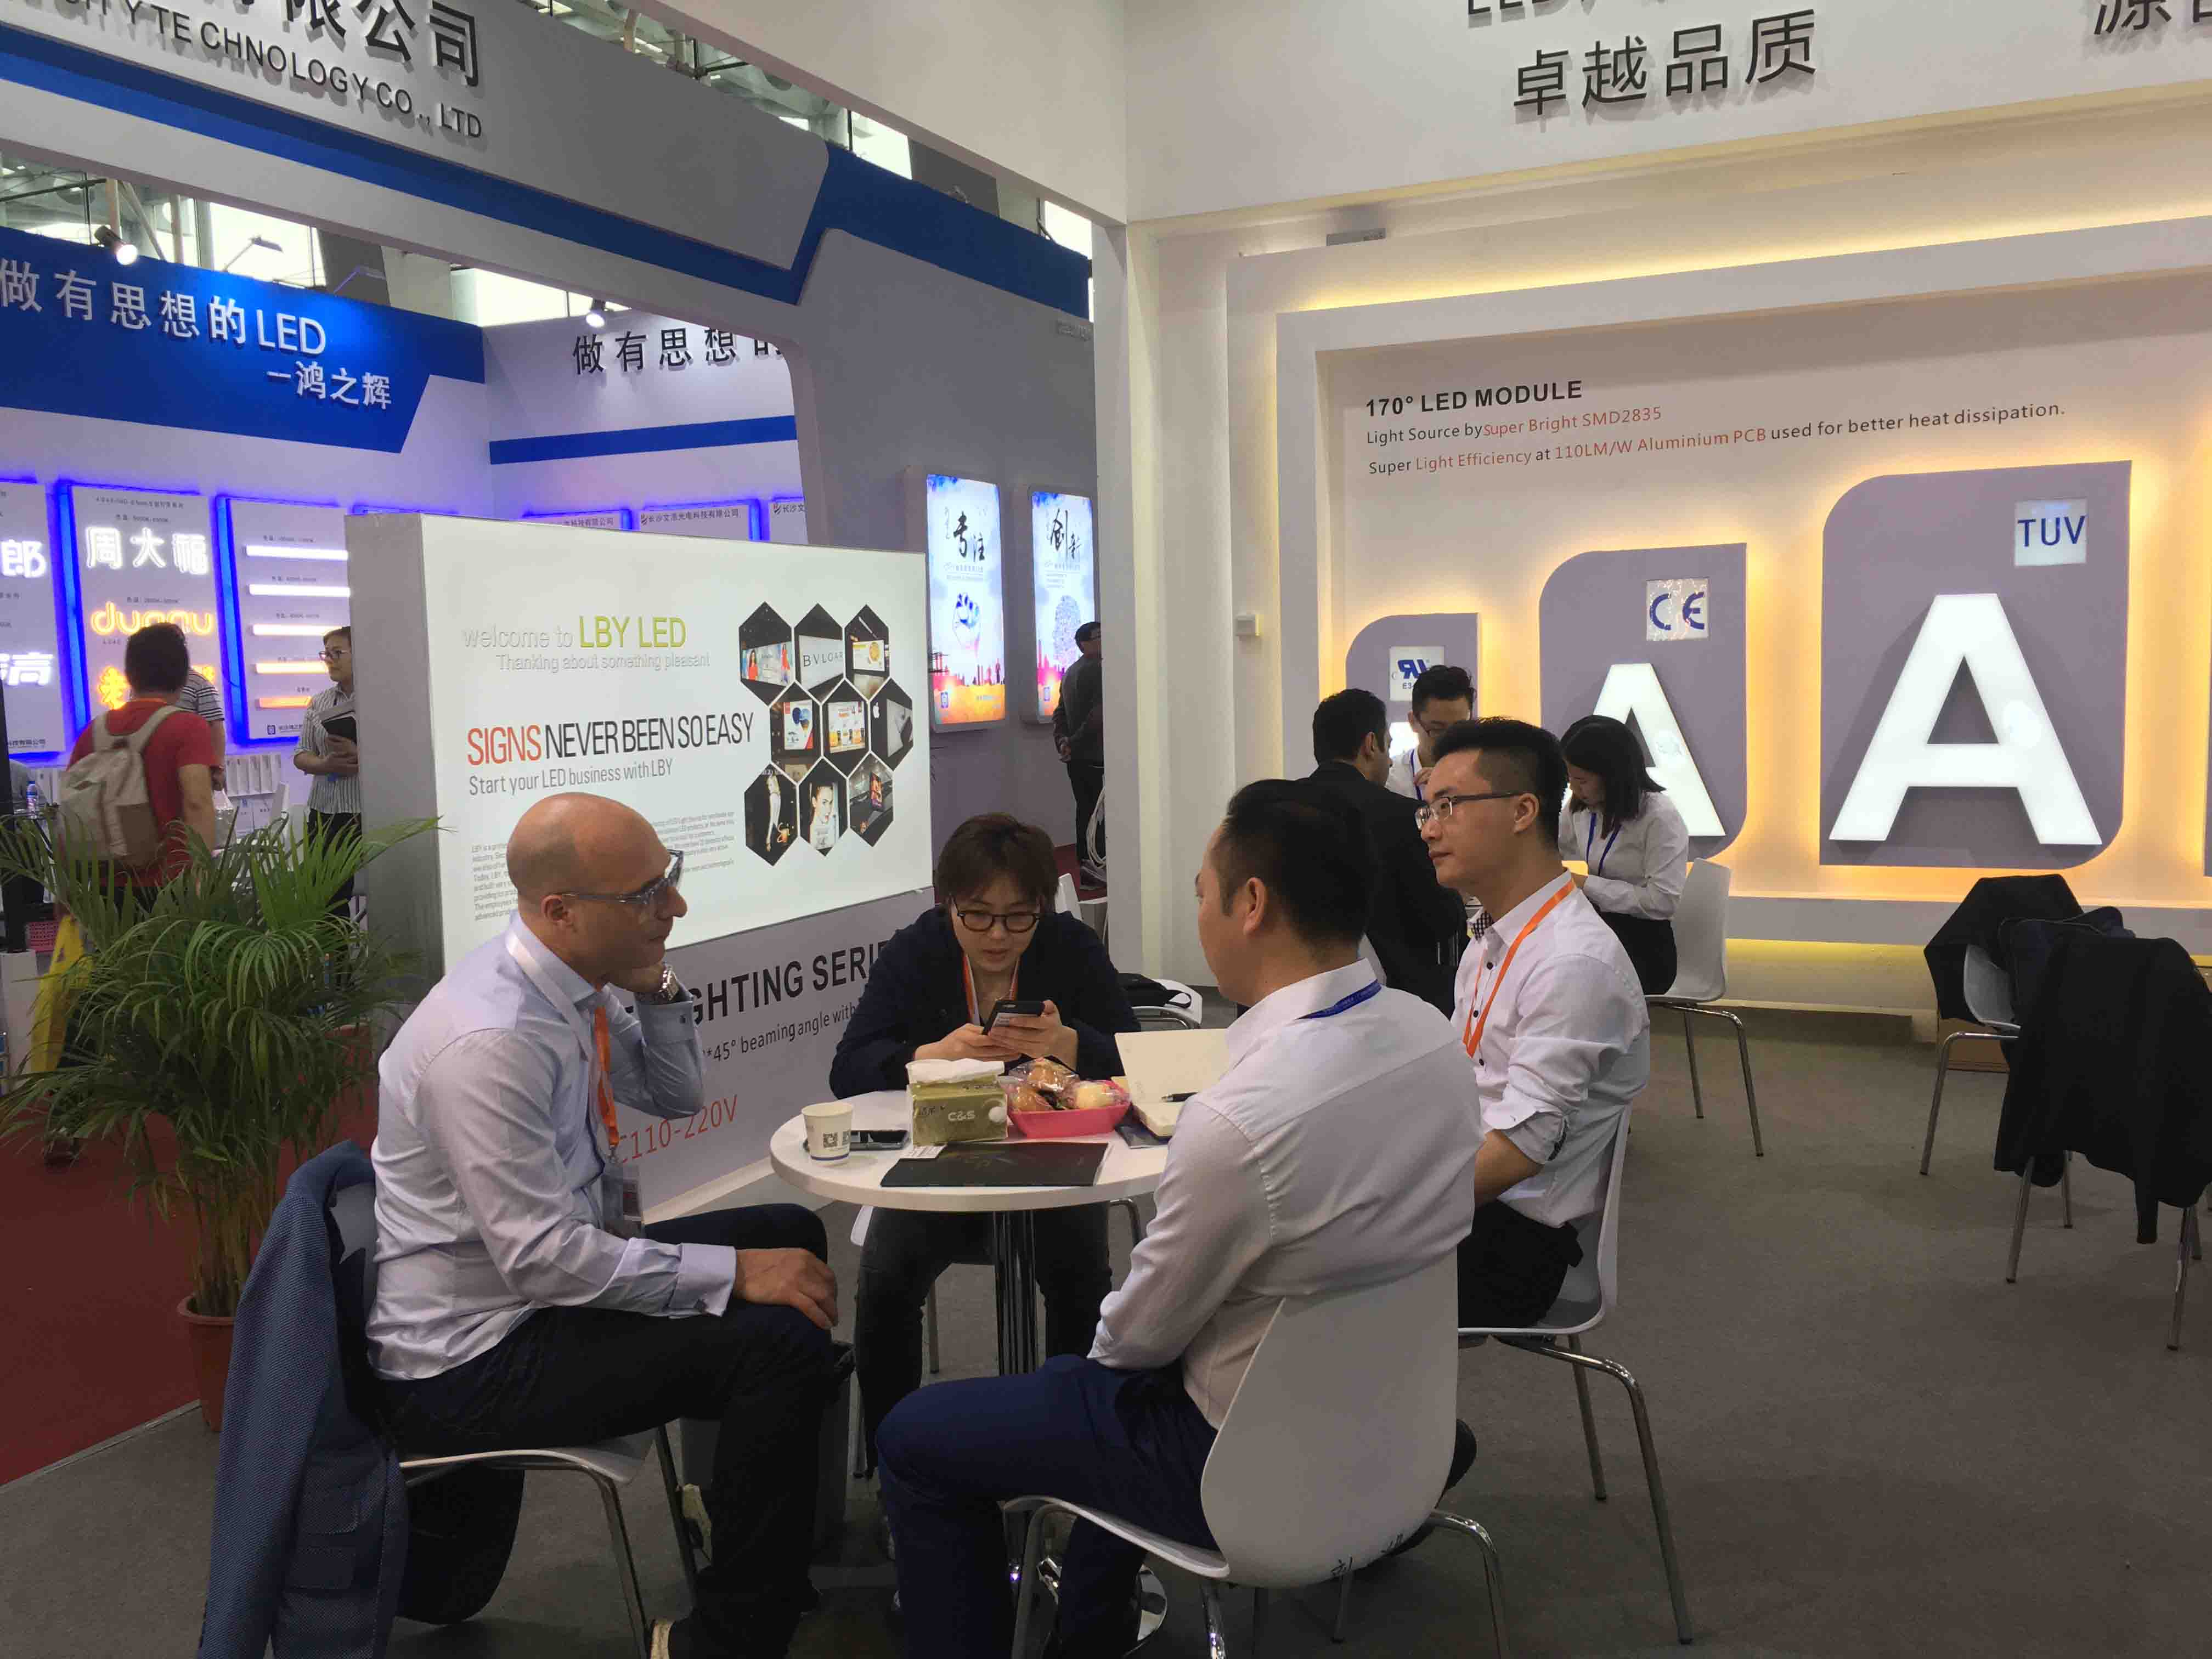 2018 LBY LED Guangzhou International Signs & LED Exhibtion